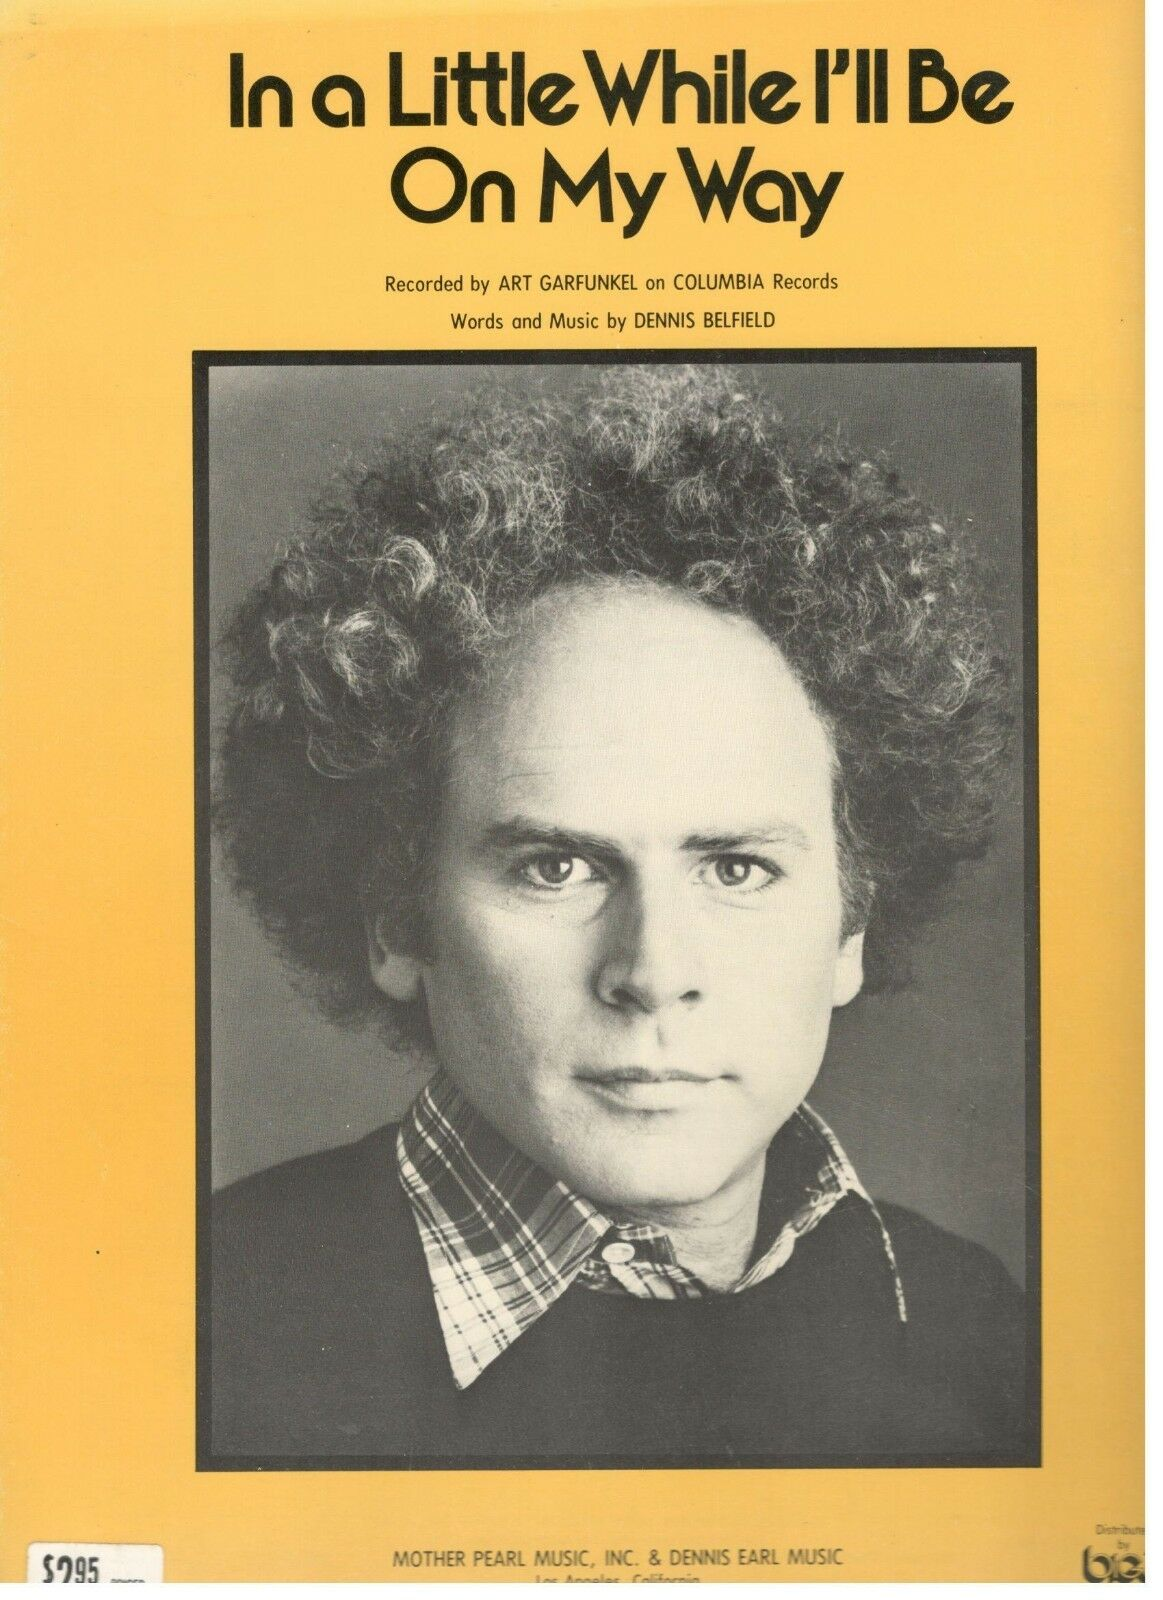 ART GARFUNKEL-IN A LITTLE WHILE I'LL BE ON MY WAY-SHEET MUSIC-1978-RARE-NEW-MINT